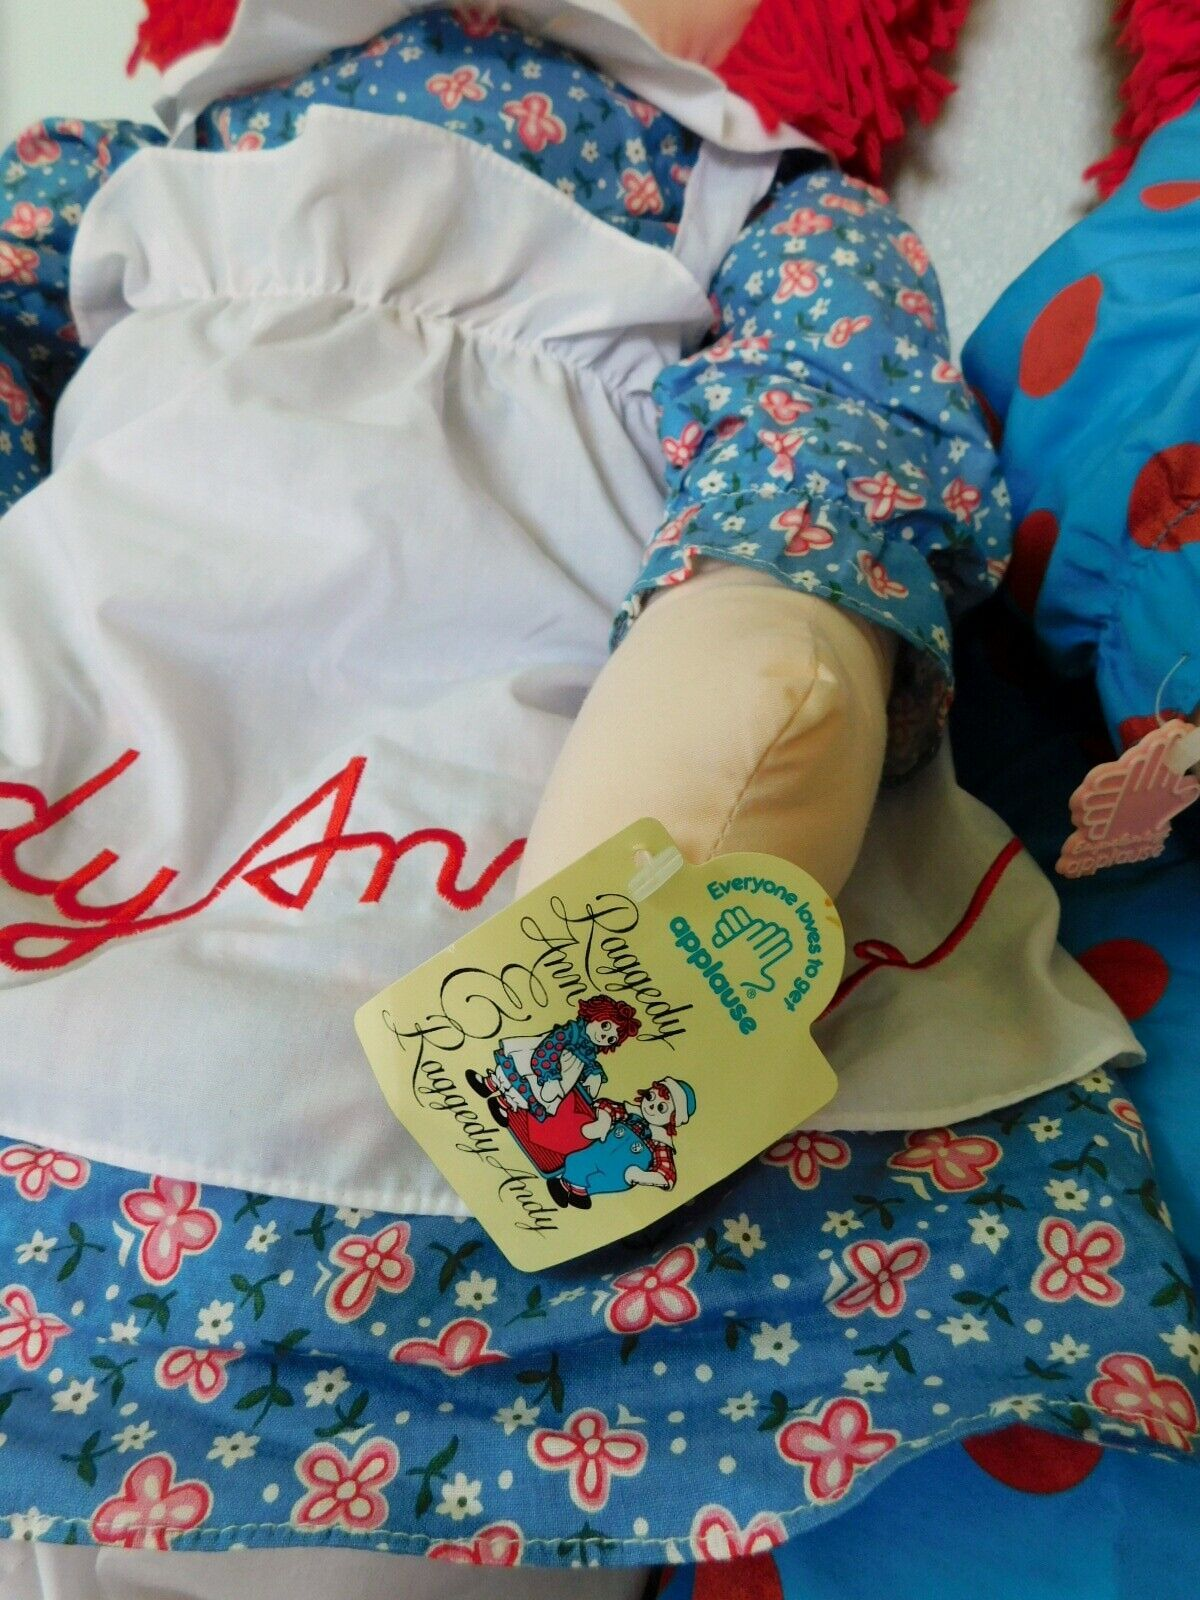 "(2) 36"" RAGGEDY ANN DOLLS with Hangtags Applause image 5"